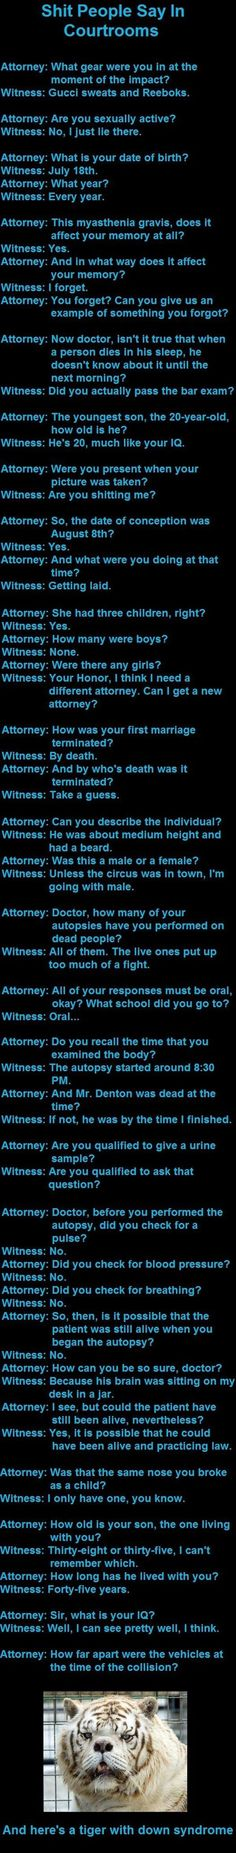 These are ridiculous but they male me wonder what the cases were that these questions were asked...